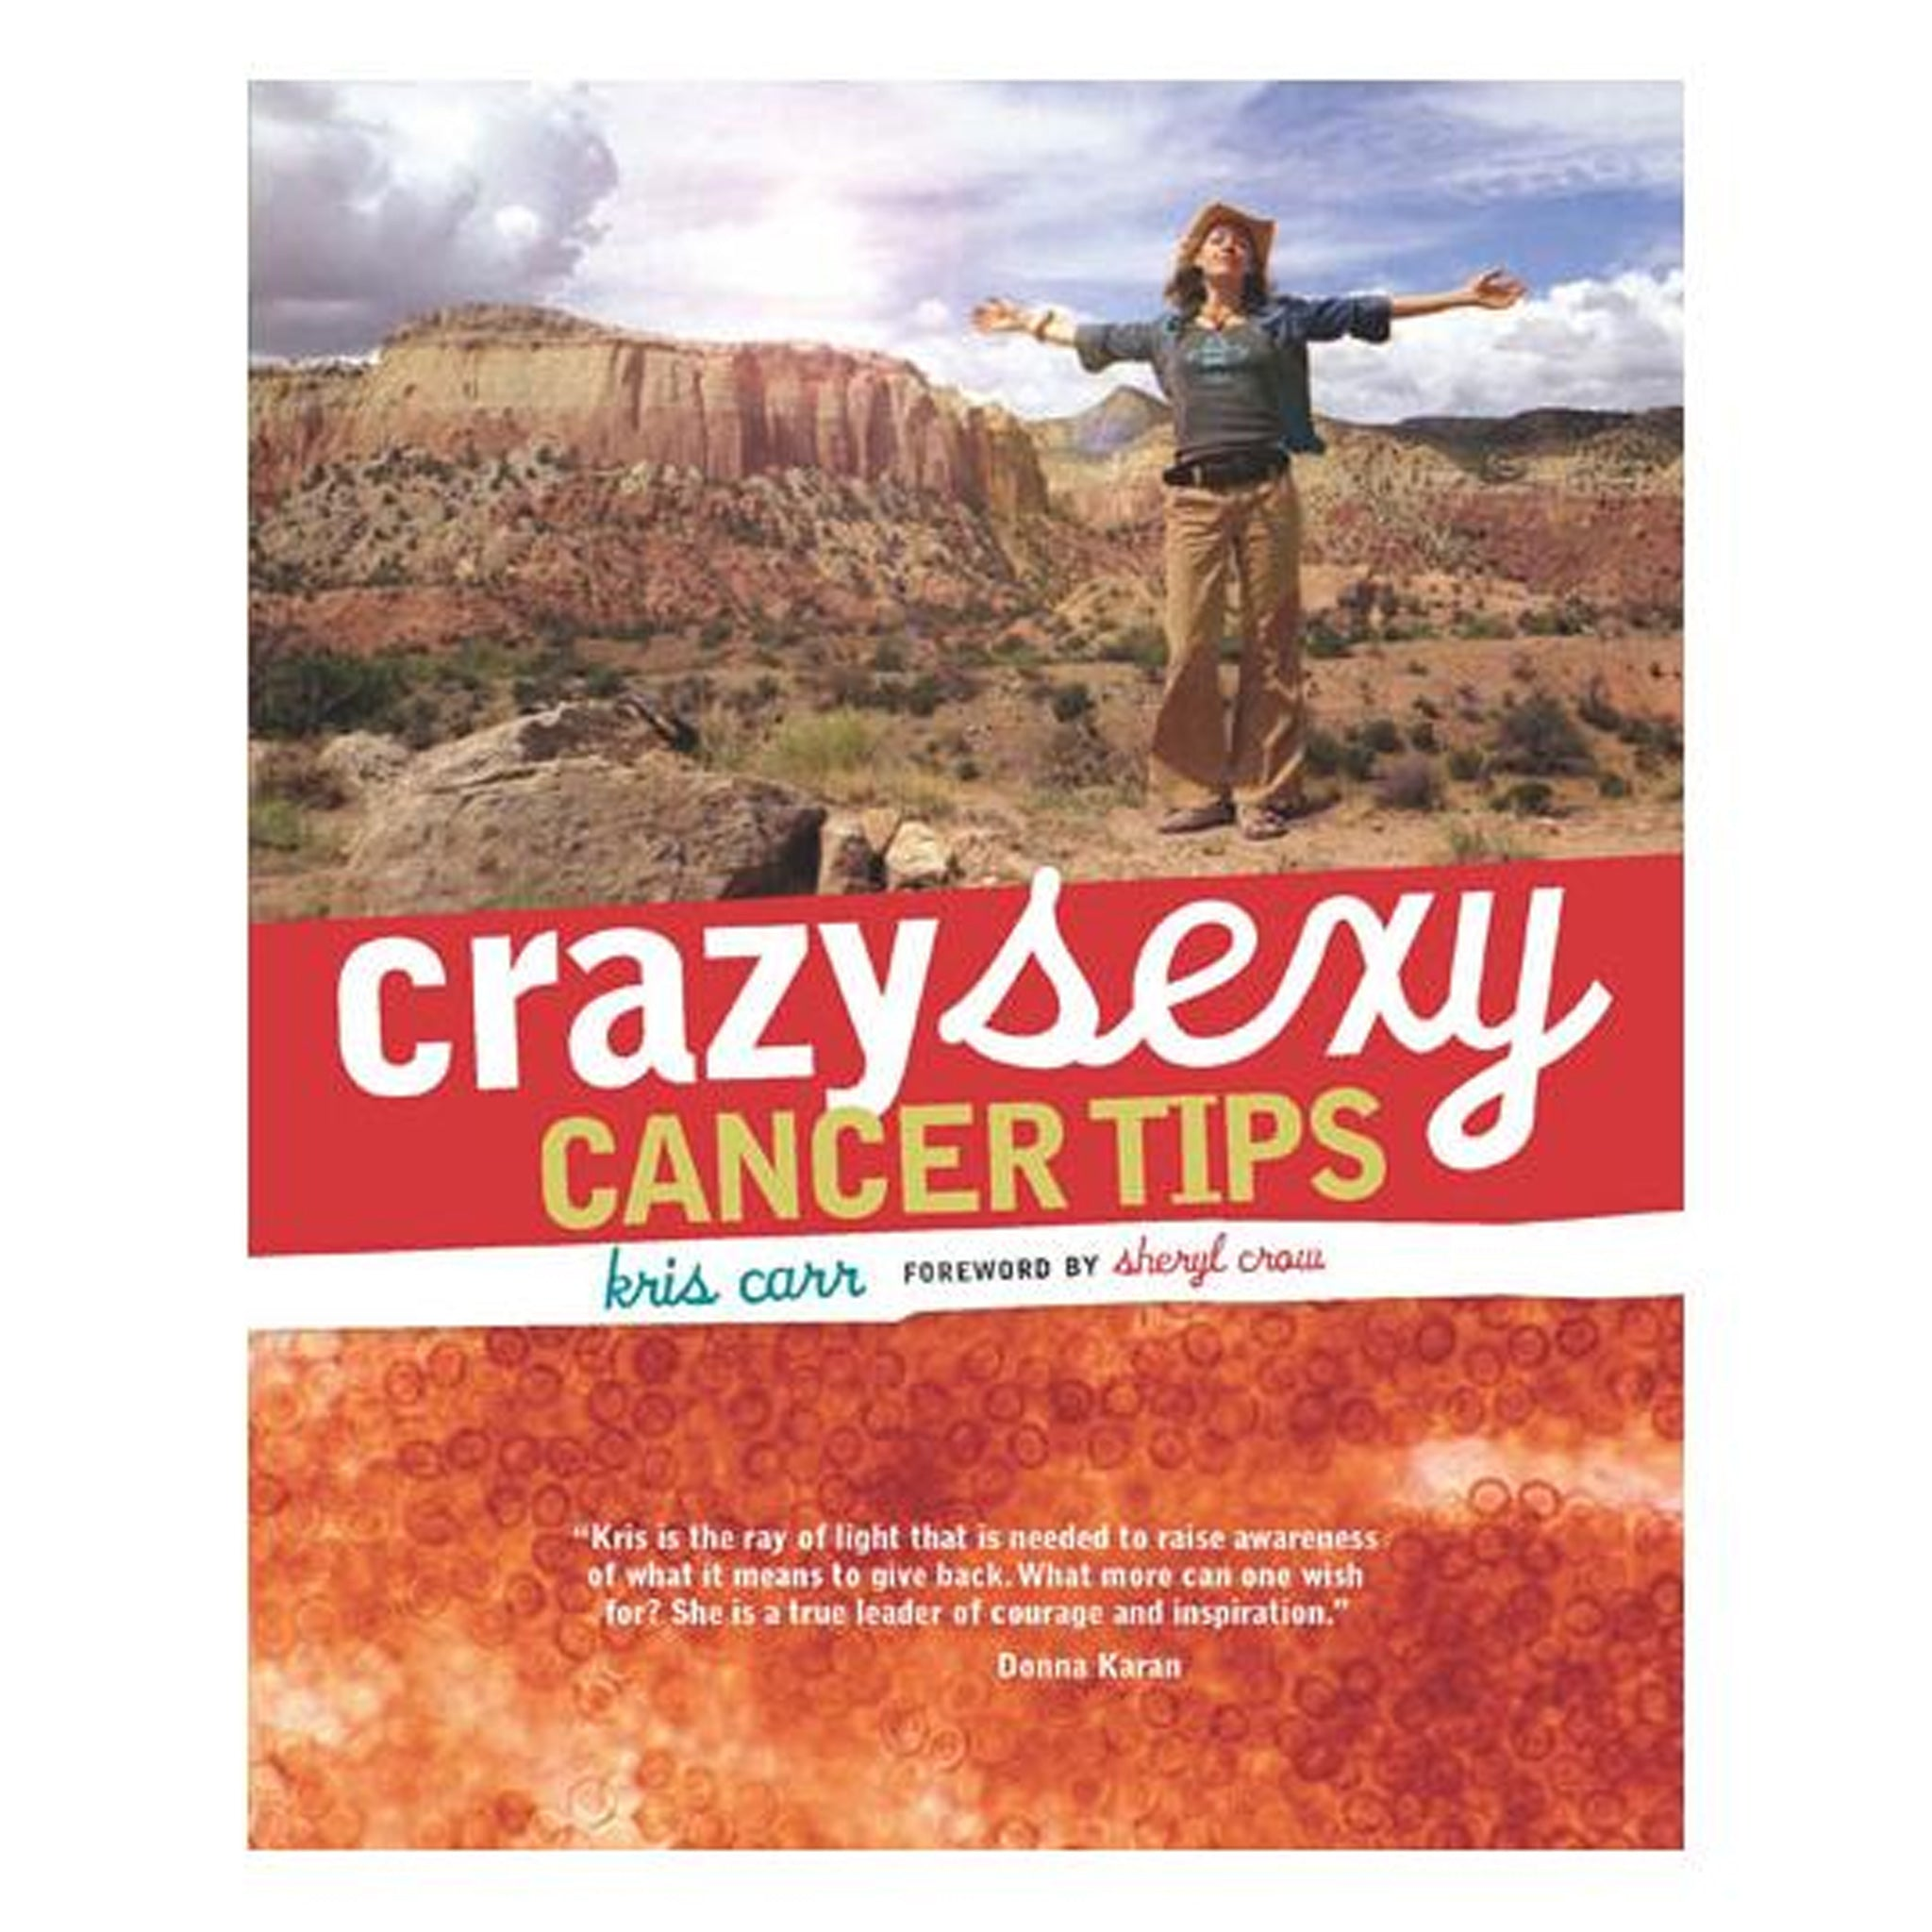 Crazy Sexy Cancer Tips by Kriss Carr, GPBKC01 - Tribest